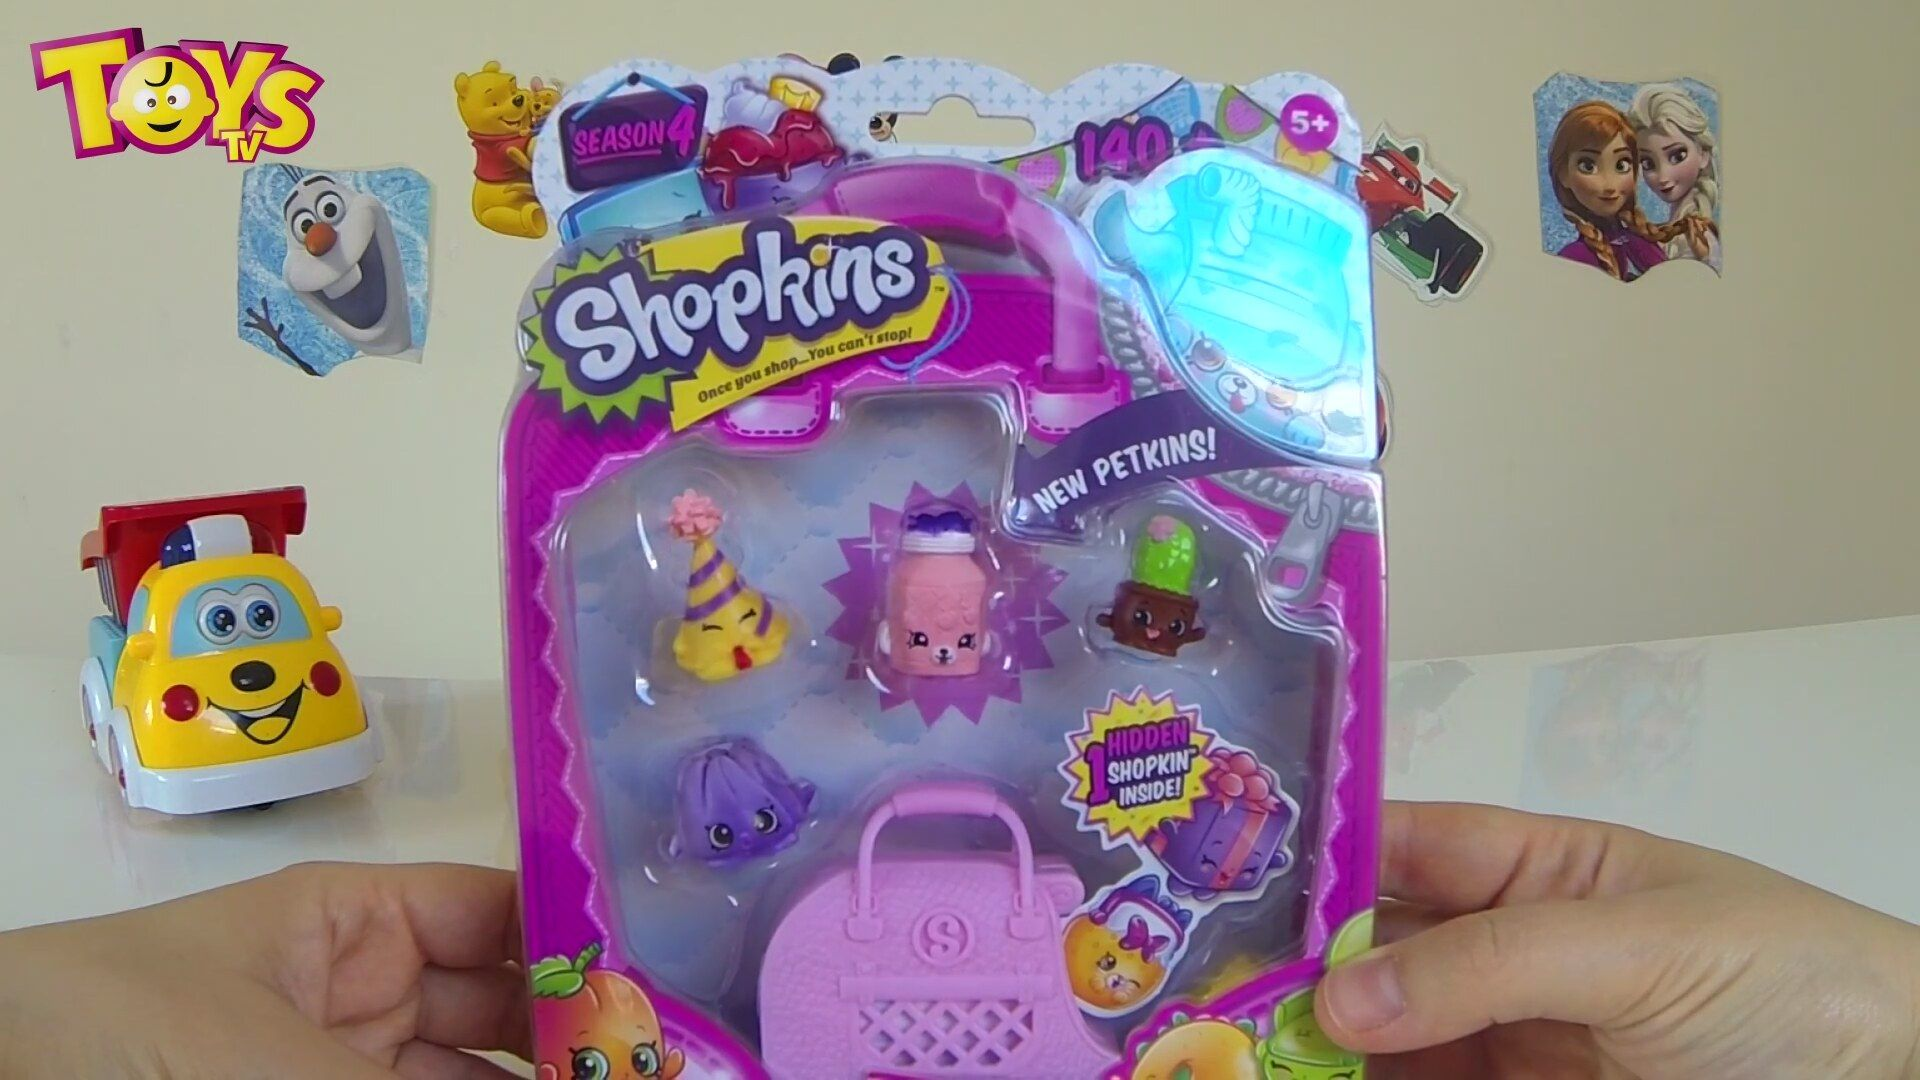 New Toys Tv Shopkins Season Cicibic The Kanalm My Youtube Video Is Different